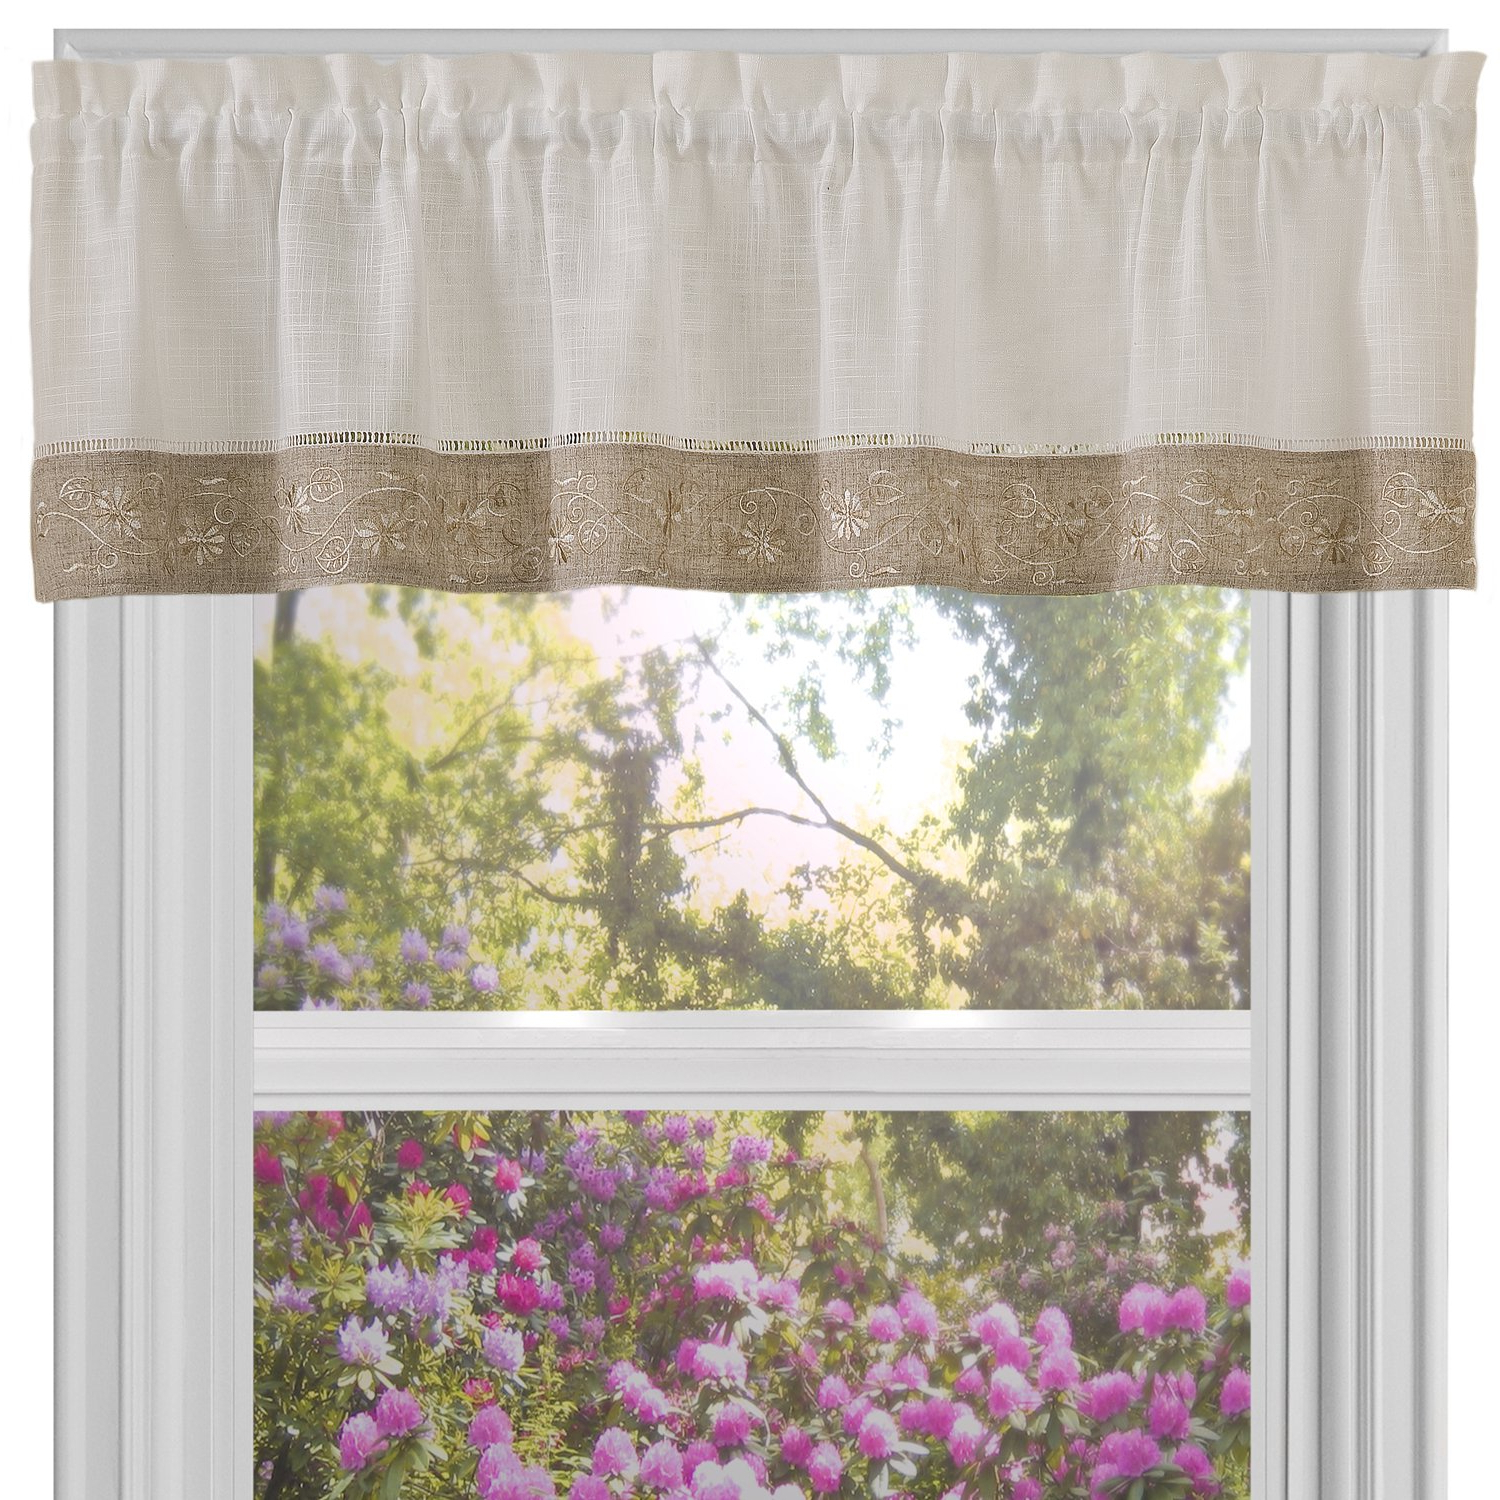 2020 Oakwood Linen Style Decorative Curtain Tier Sets Intended For Amazon: Sweet Home Collection Oakwood Linen Design (View 1 of 20)